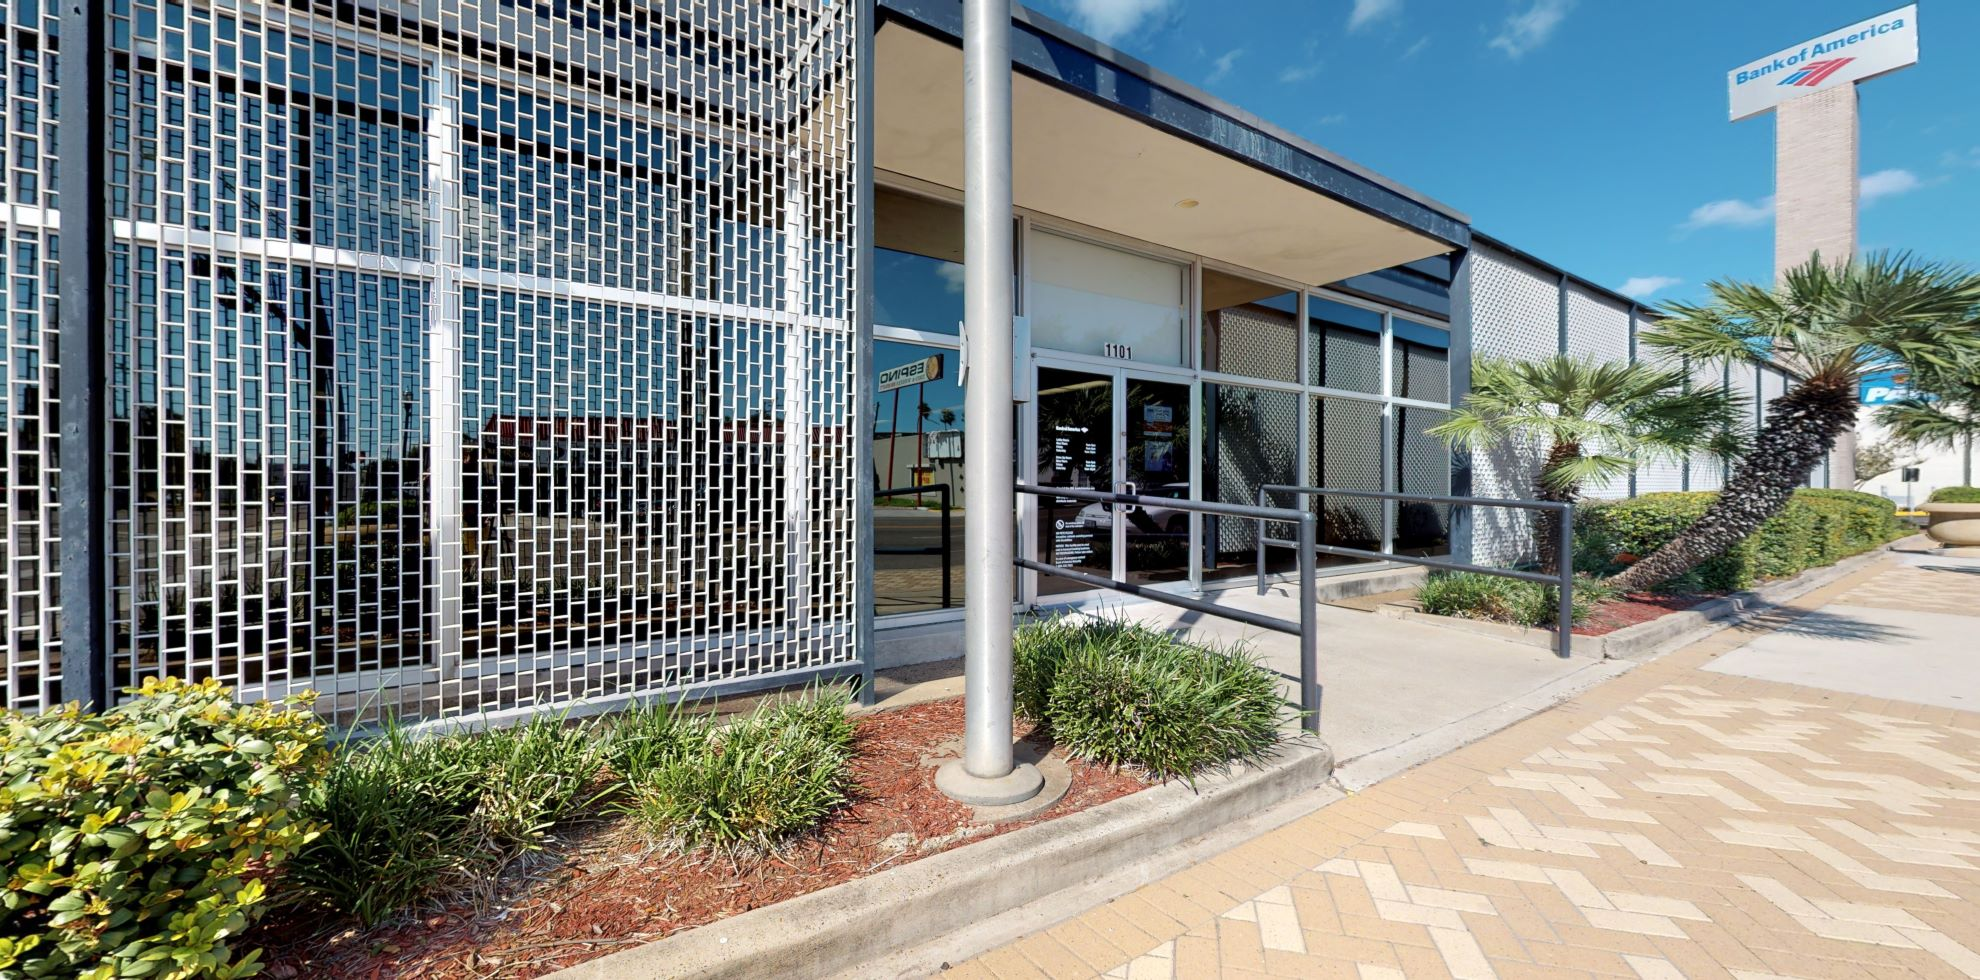 Bank of America financial center with drive-thru ATM and teller | 1101 N Conway Ave, Mission, TX 78572